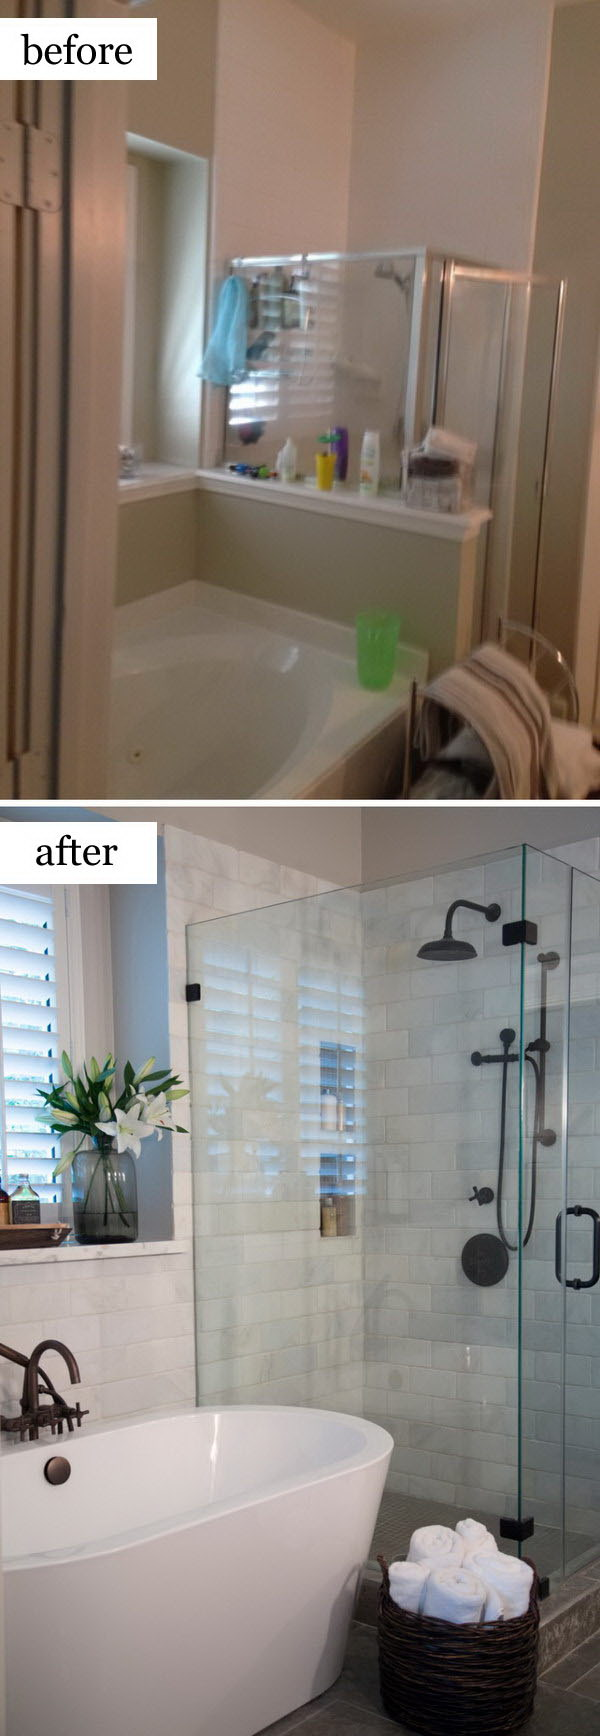 ideas bathroom remodel before and after makeovers 20 most beautiful bathroom remodeling ideas noted list 9720